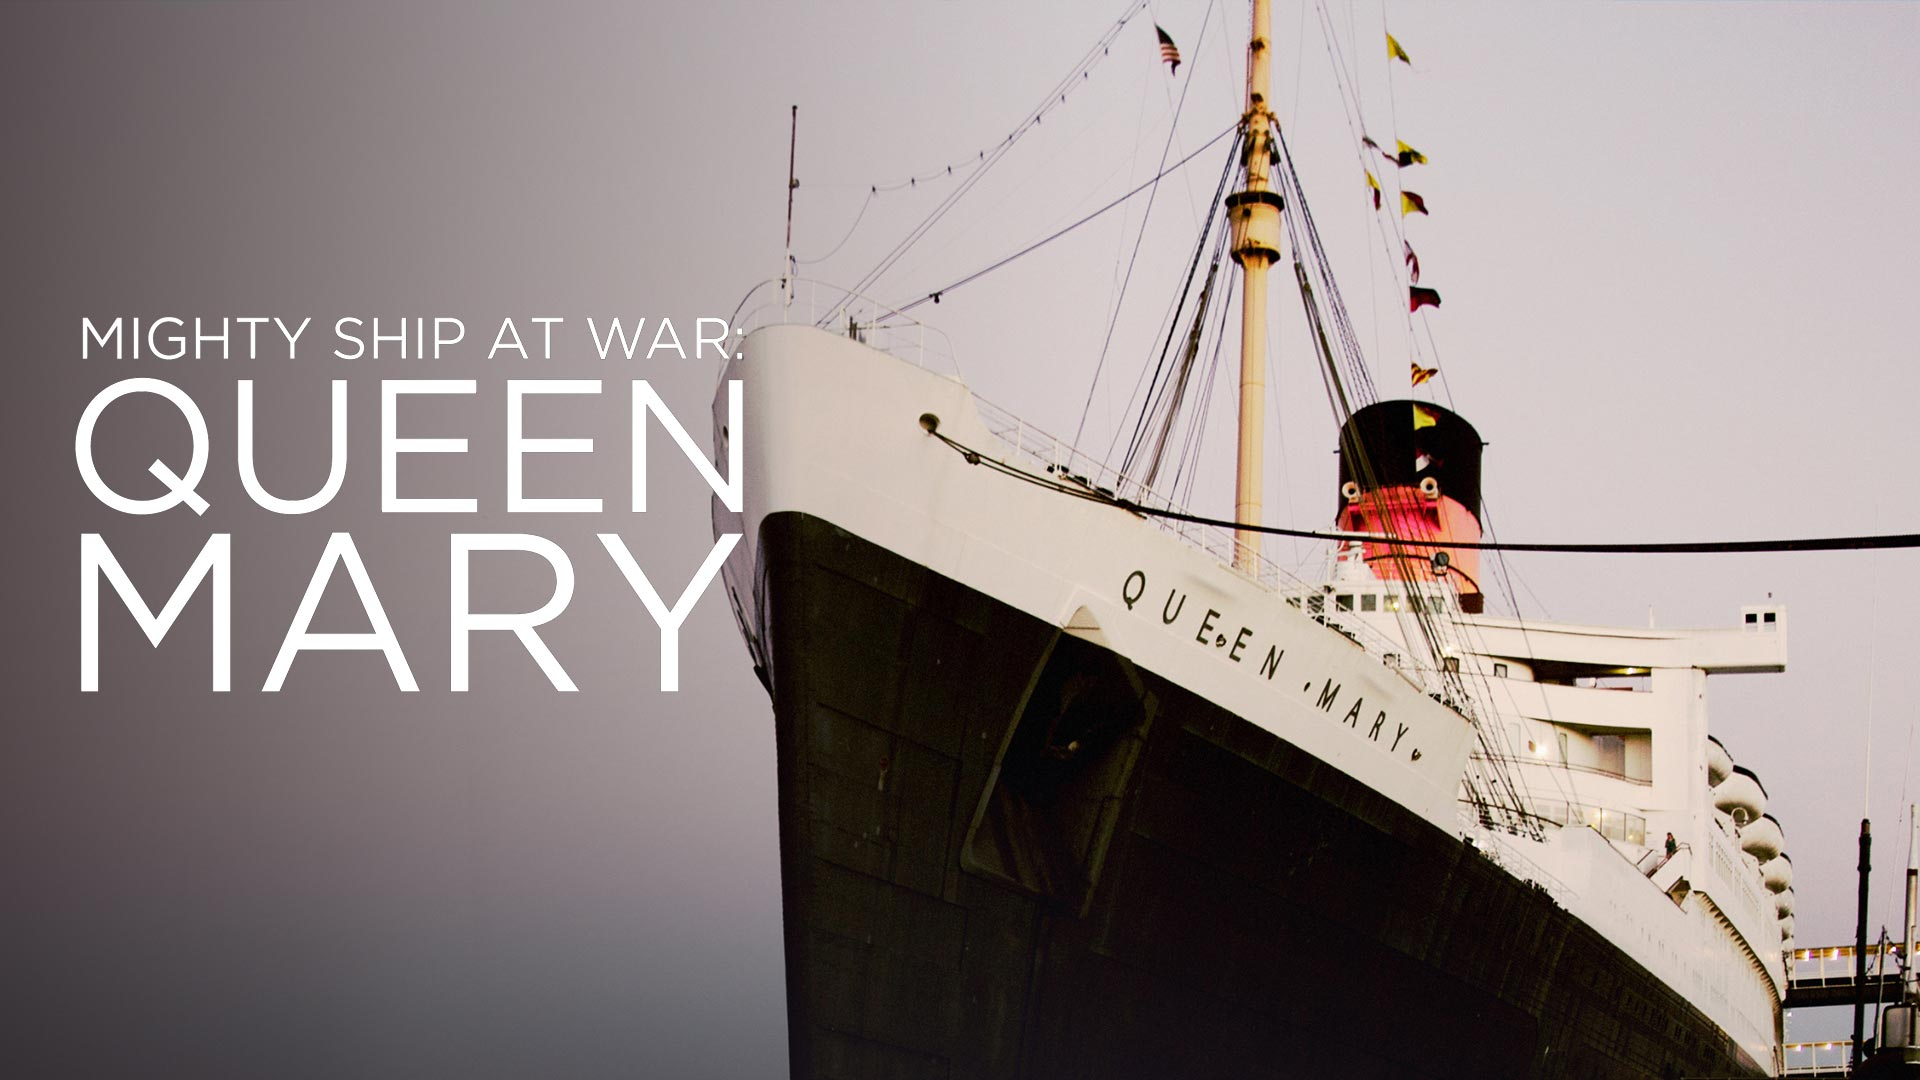 Mighty Ship at War: Queen Mary